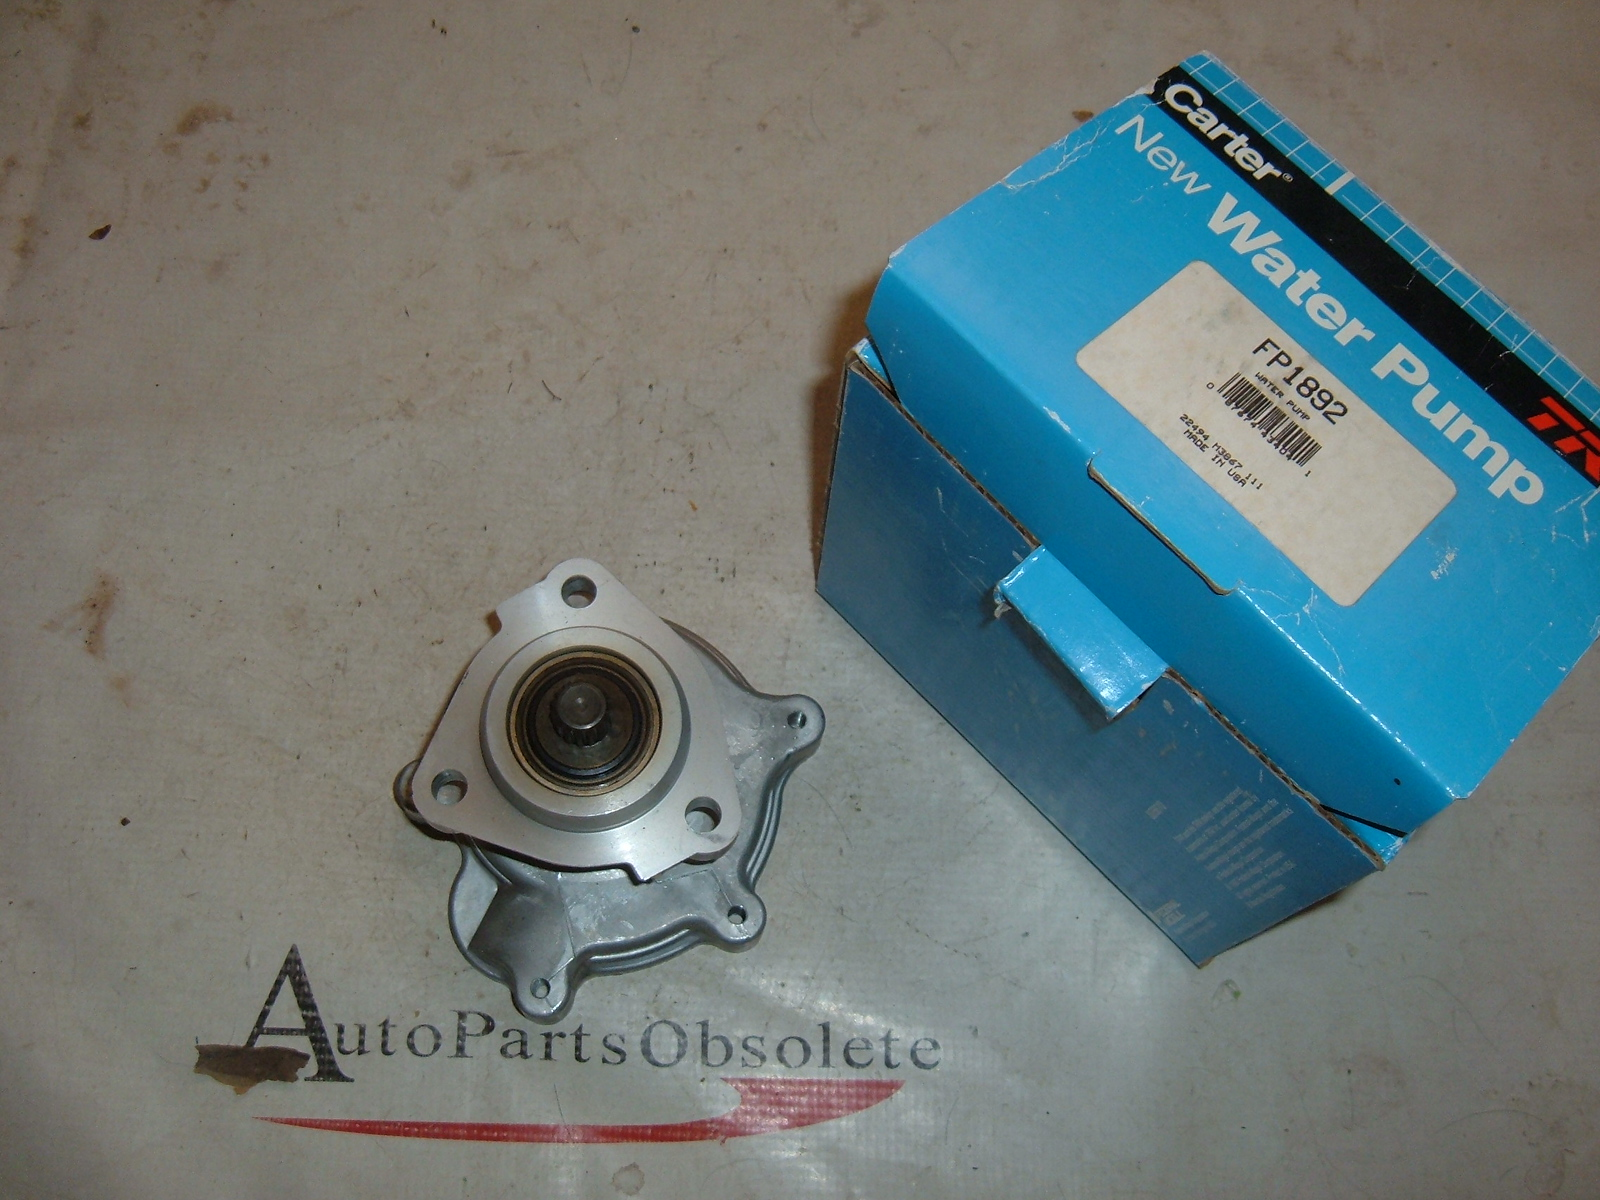 1987 88 89 90 91 92 93 94 chevrolet buick pontiac water pump 4cyl new (zb fp1892)